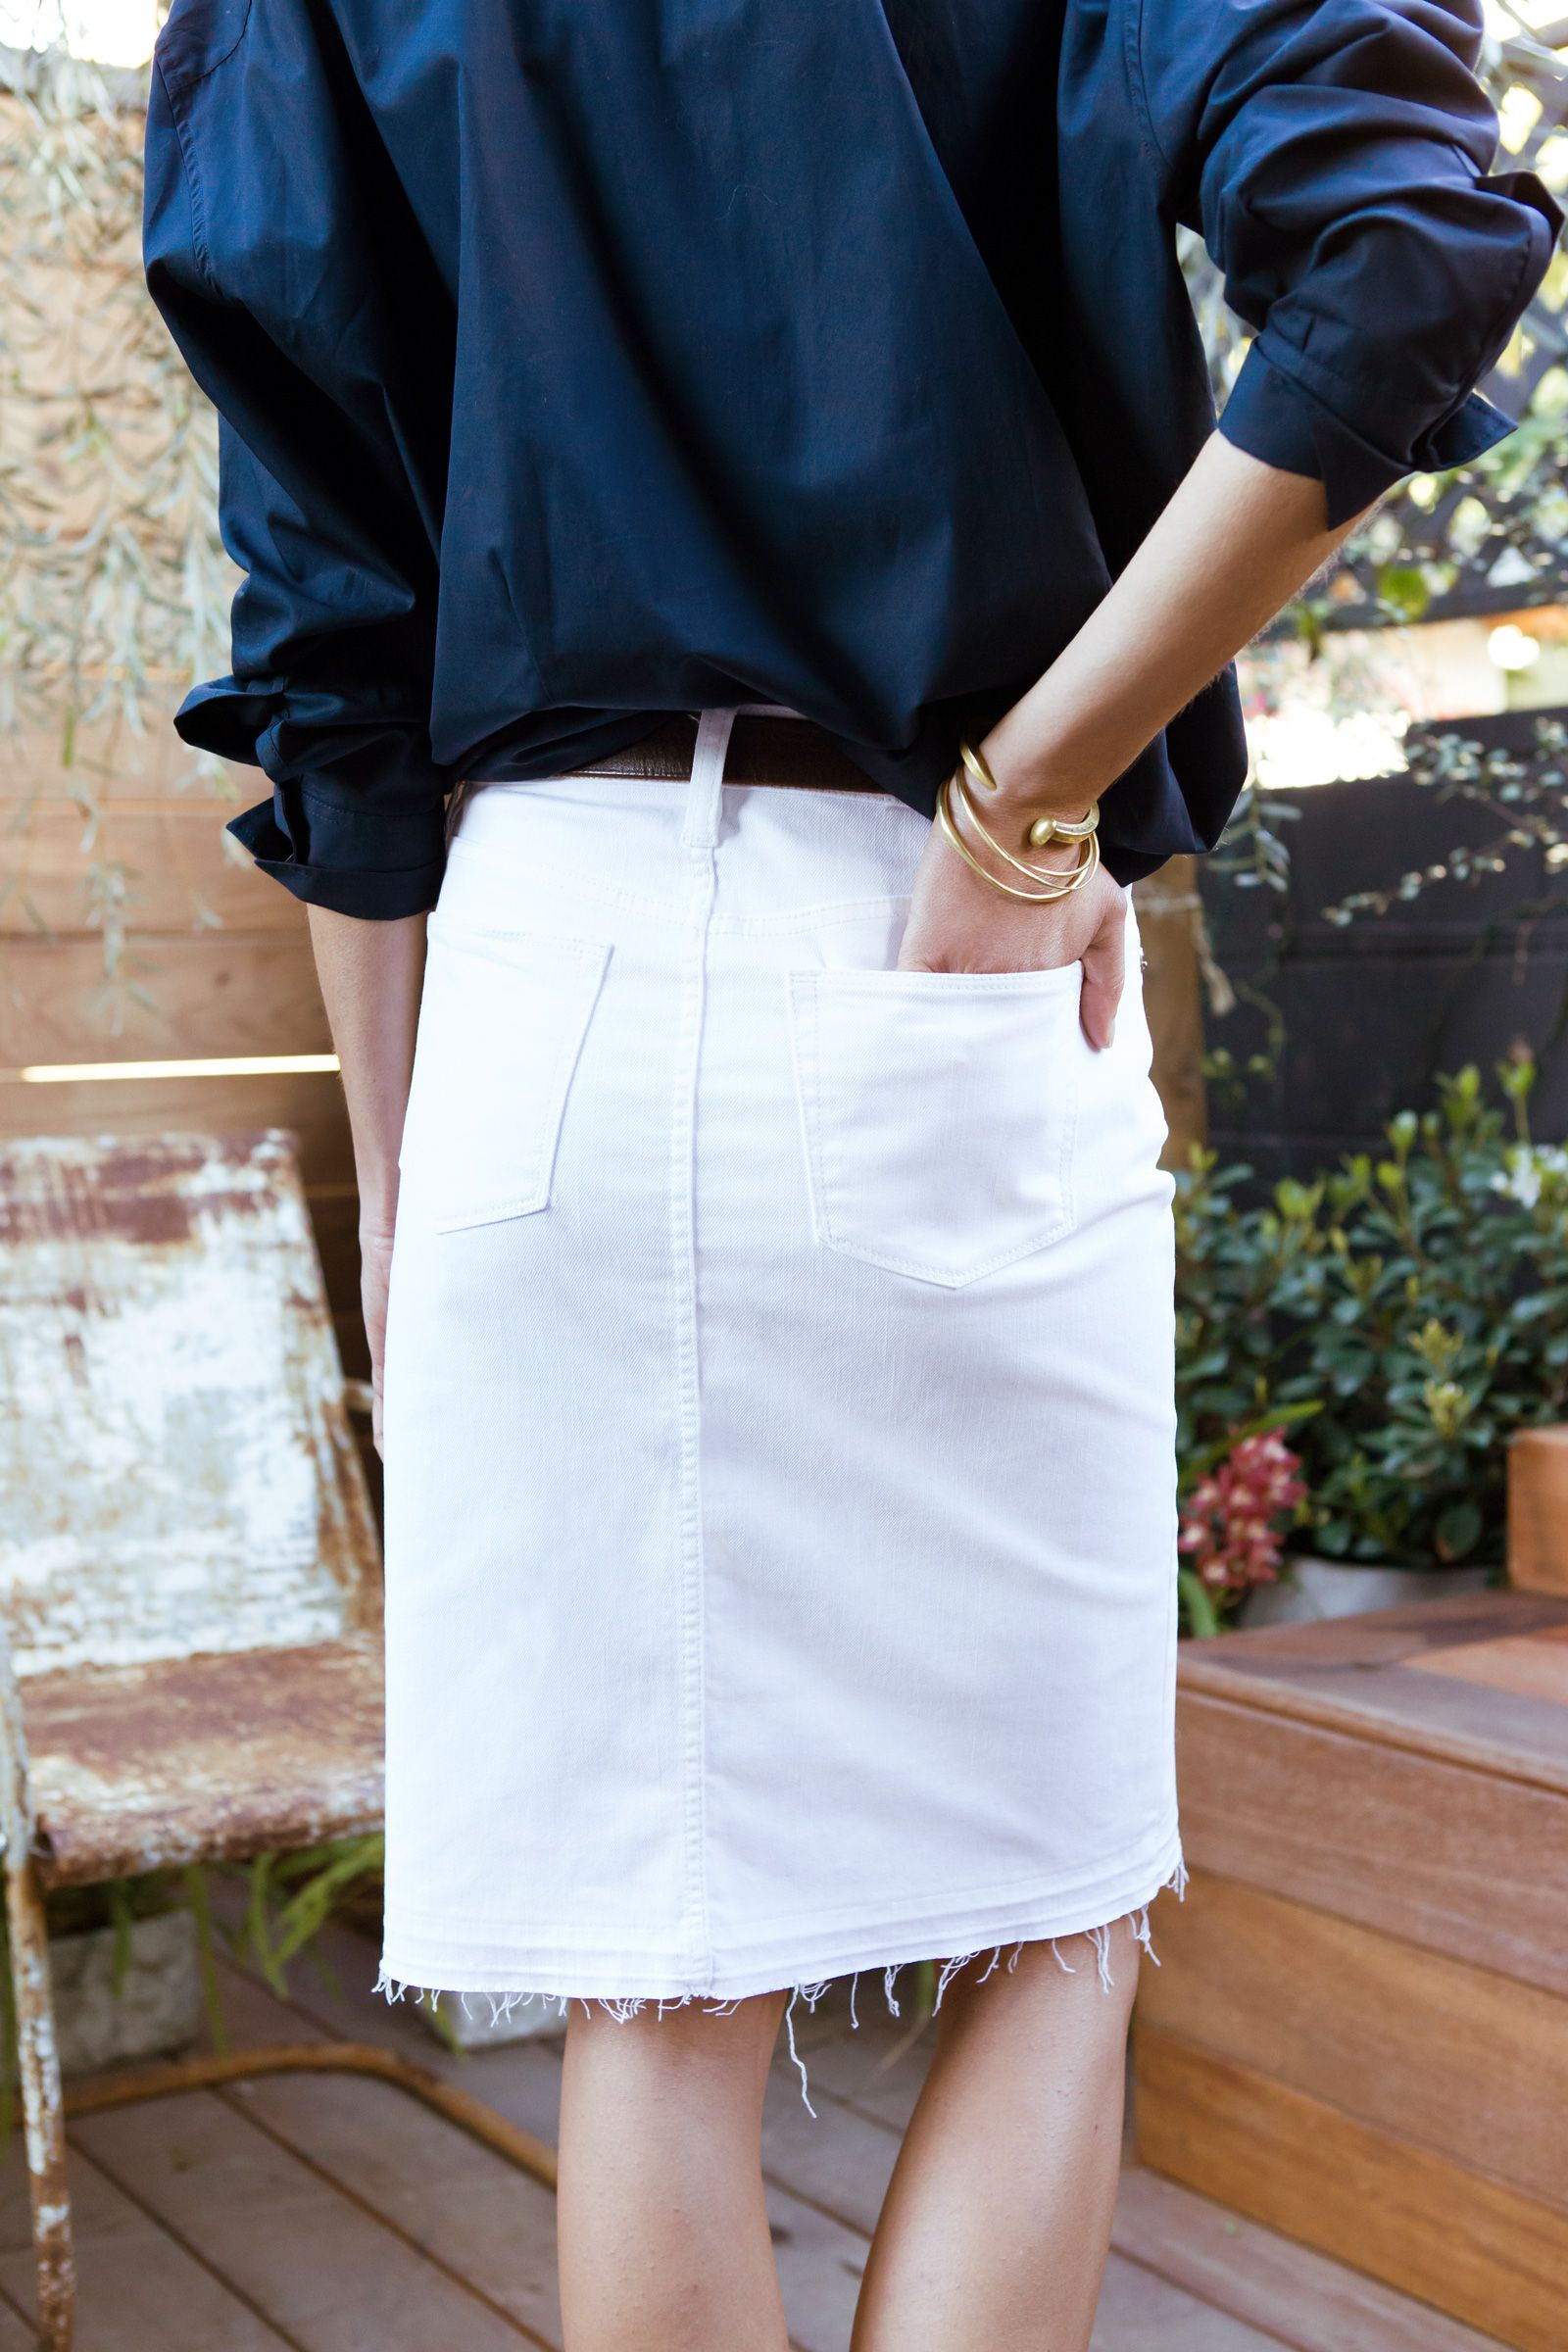 1ef8f272ae J.Crew x Jean Stories: Stylist Lawren Howell wearing the white denim skirt  from the spring/summer J.Crew denim collection. Read more on jcrew.com/blog.